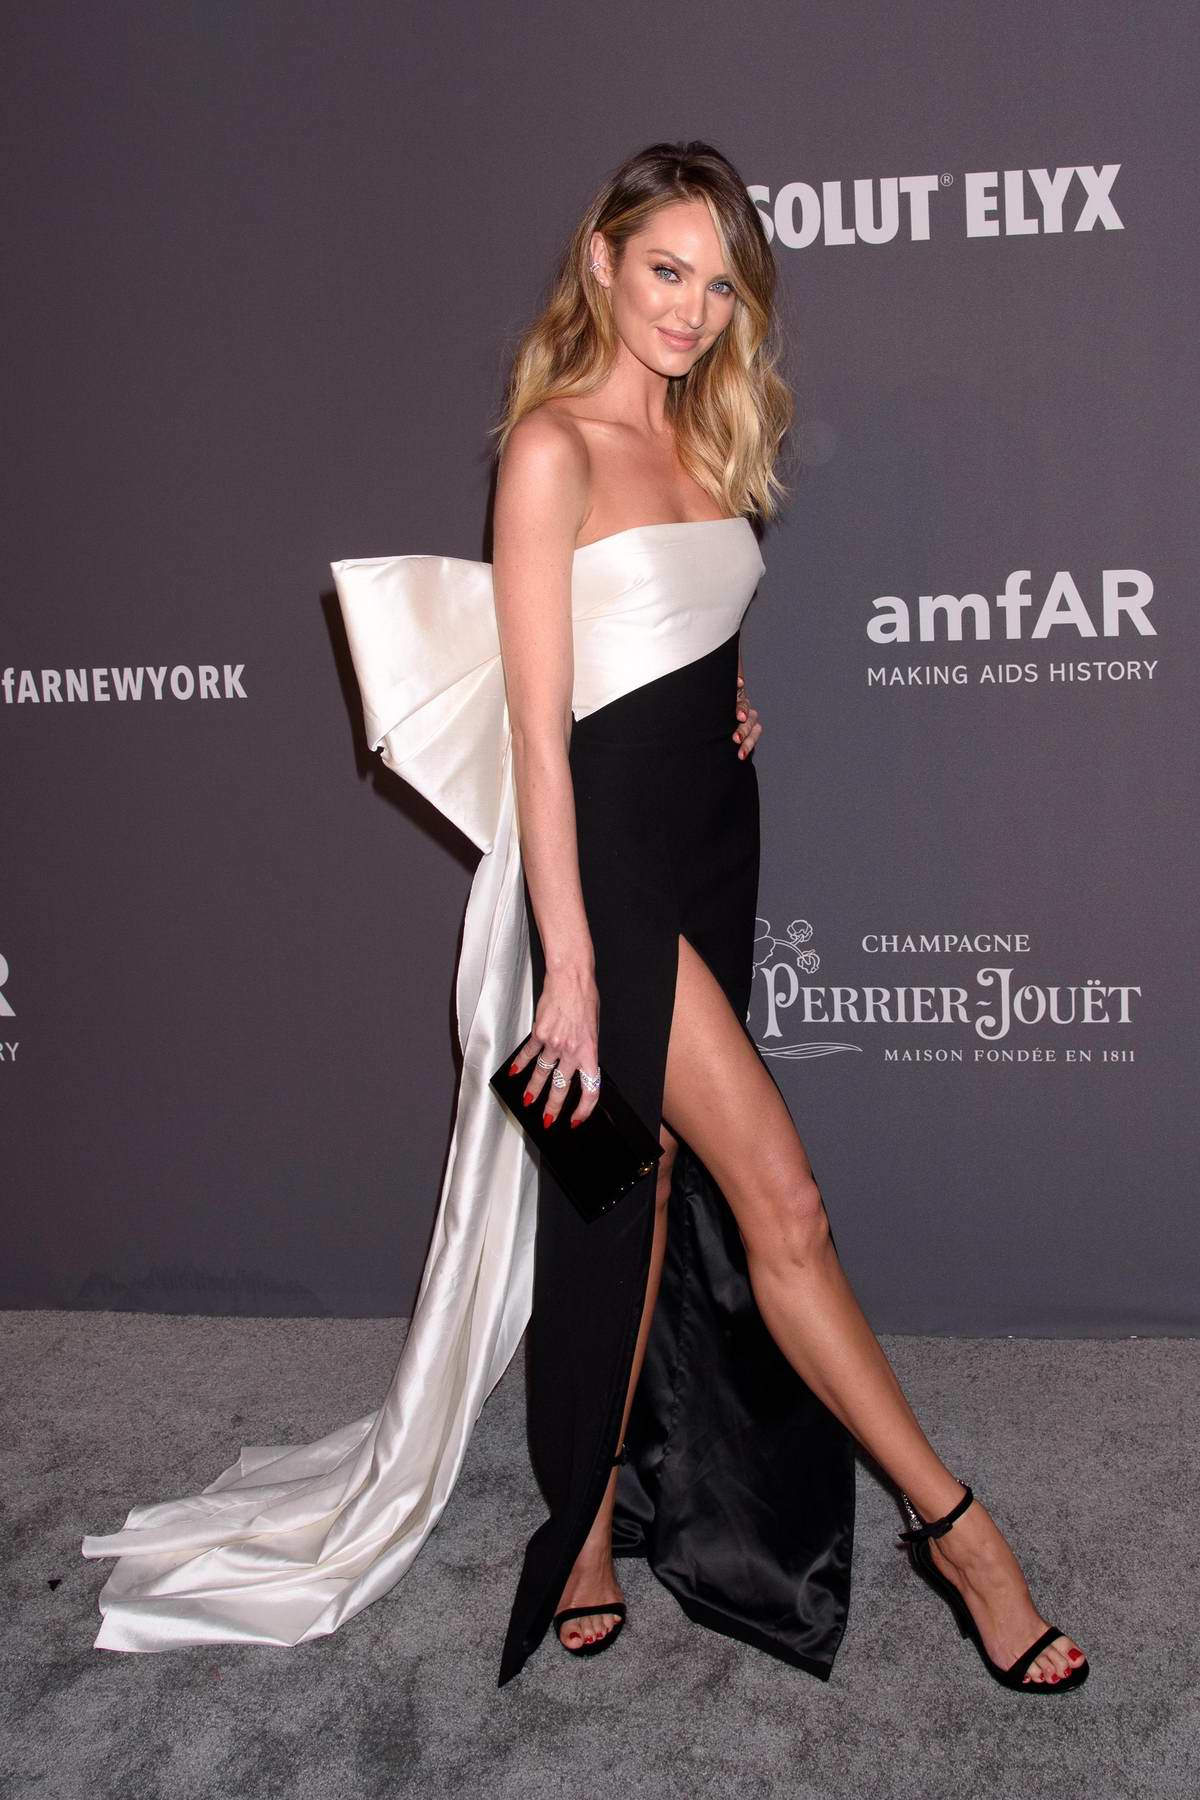 Candice Swanepoel attends amfAR New York Gala 2019 at Cipriani Wall Street in New York City